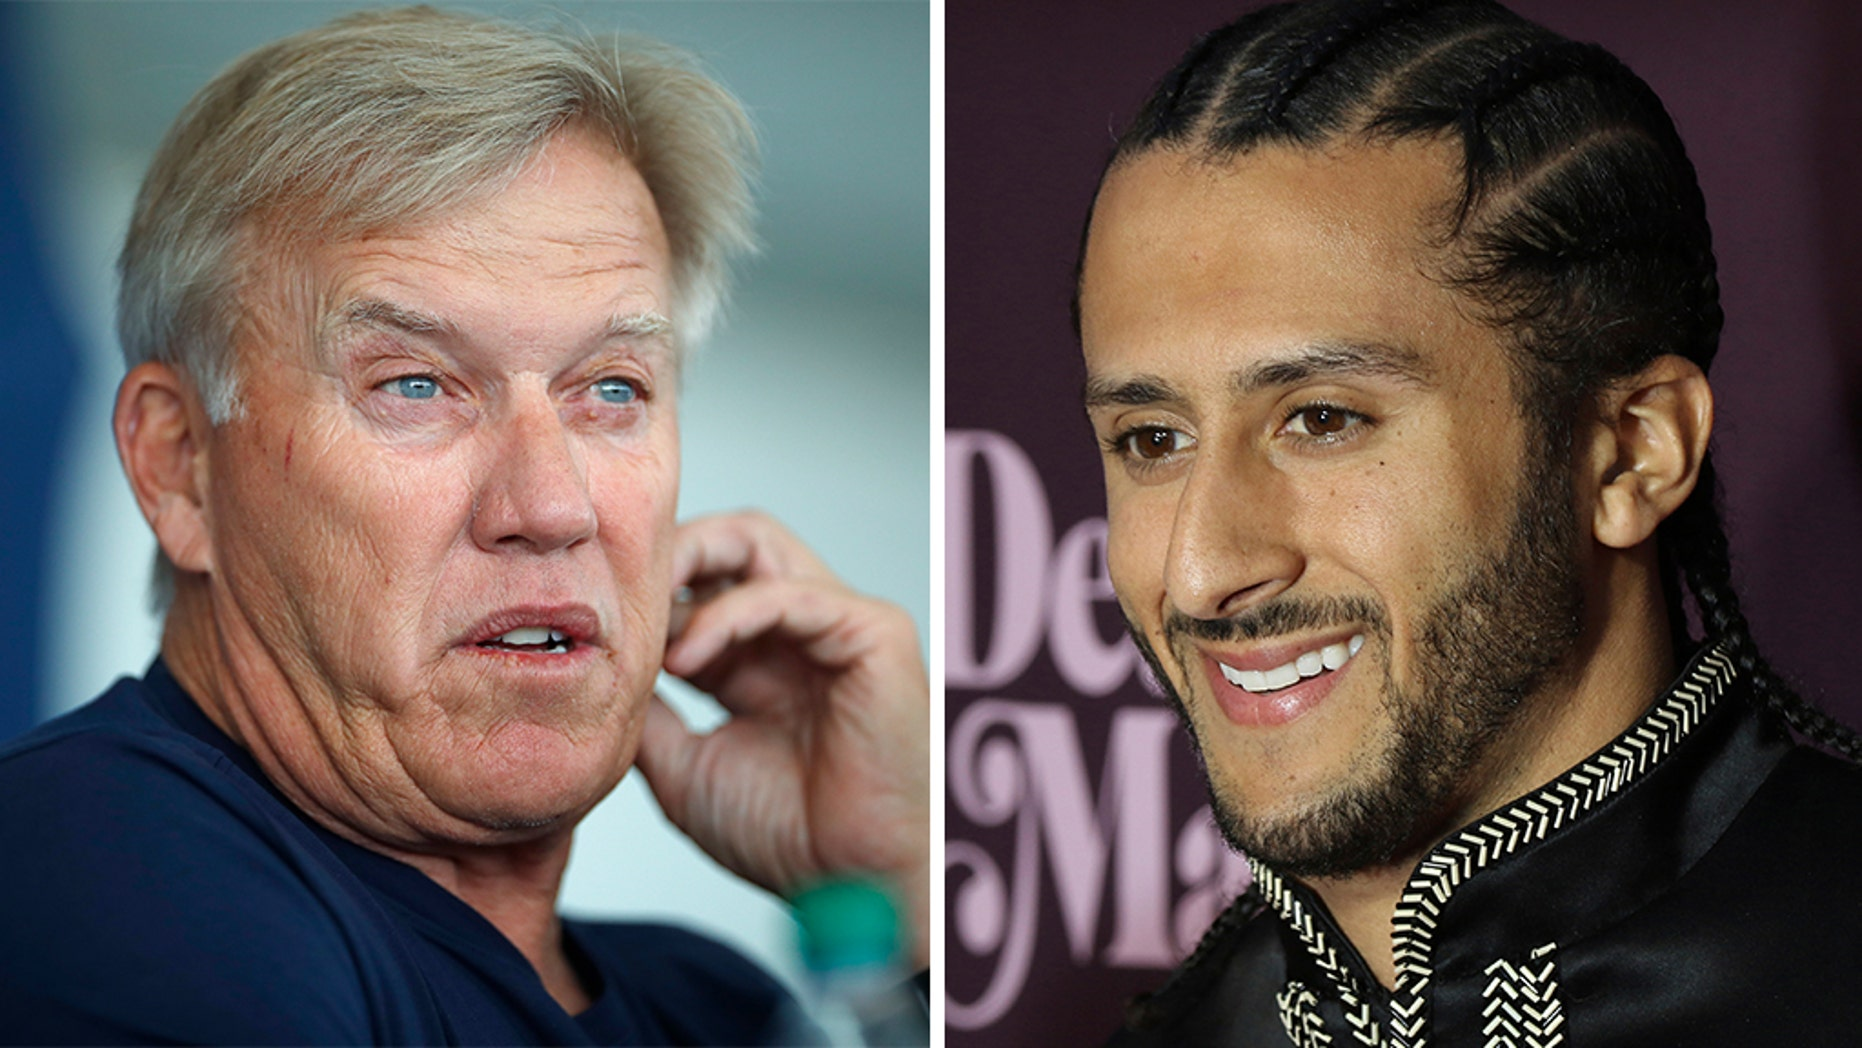 """John Elway said the Denver Broncos once gave Colin Kaepernick a """"chance"""" to be on the team, but he turned them down."""